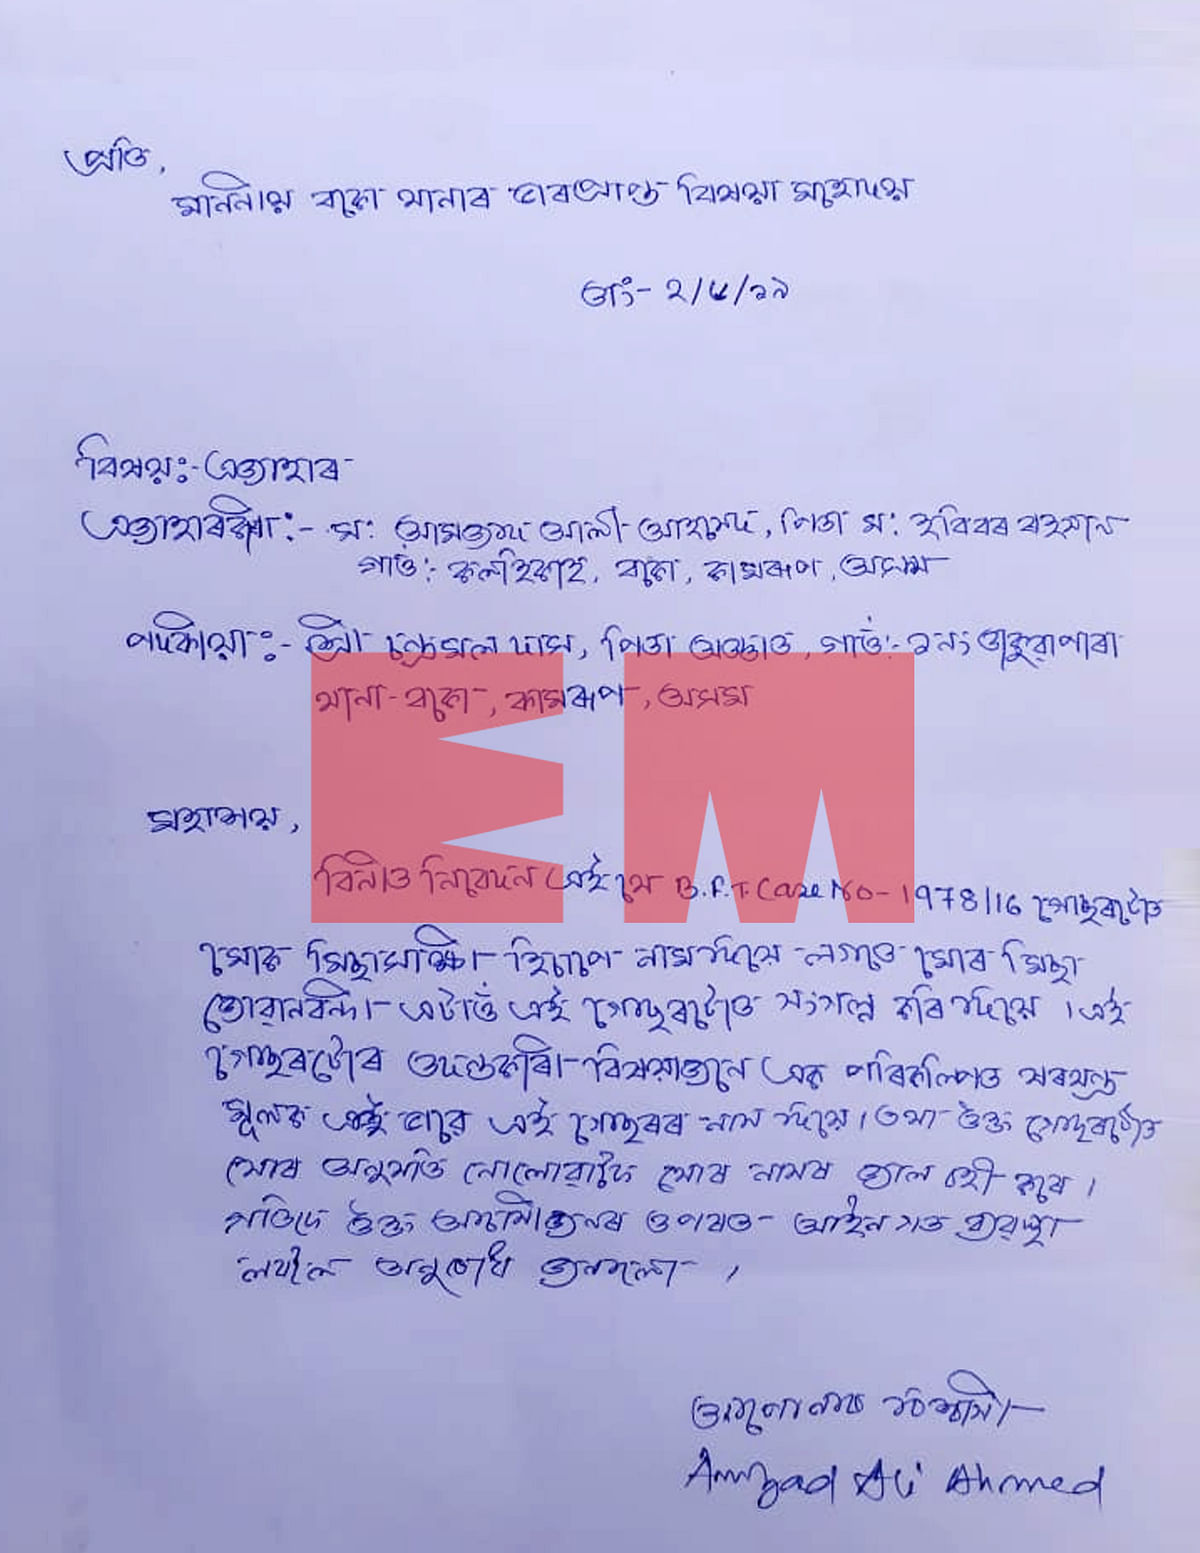 The FIR filed by Amzad Ali Ahmed against the then SI of border police Chandramal Das